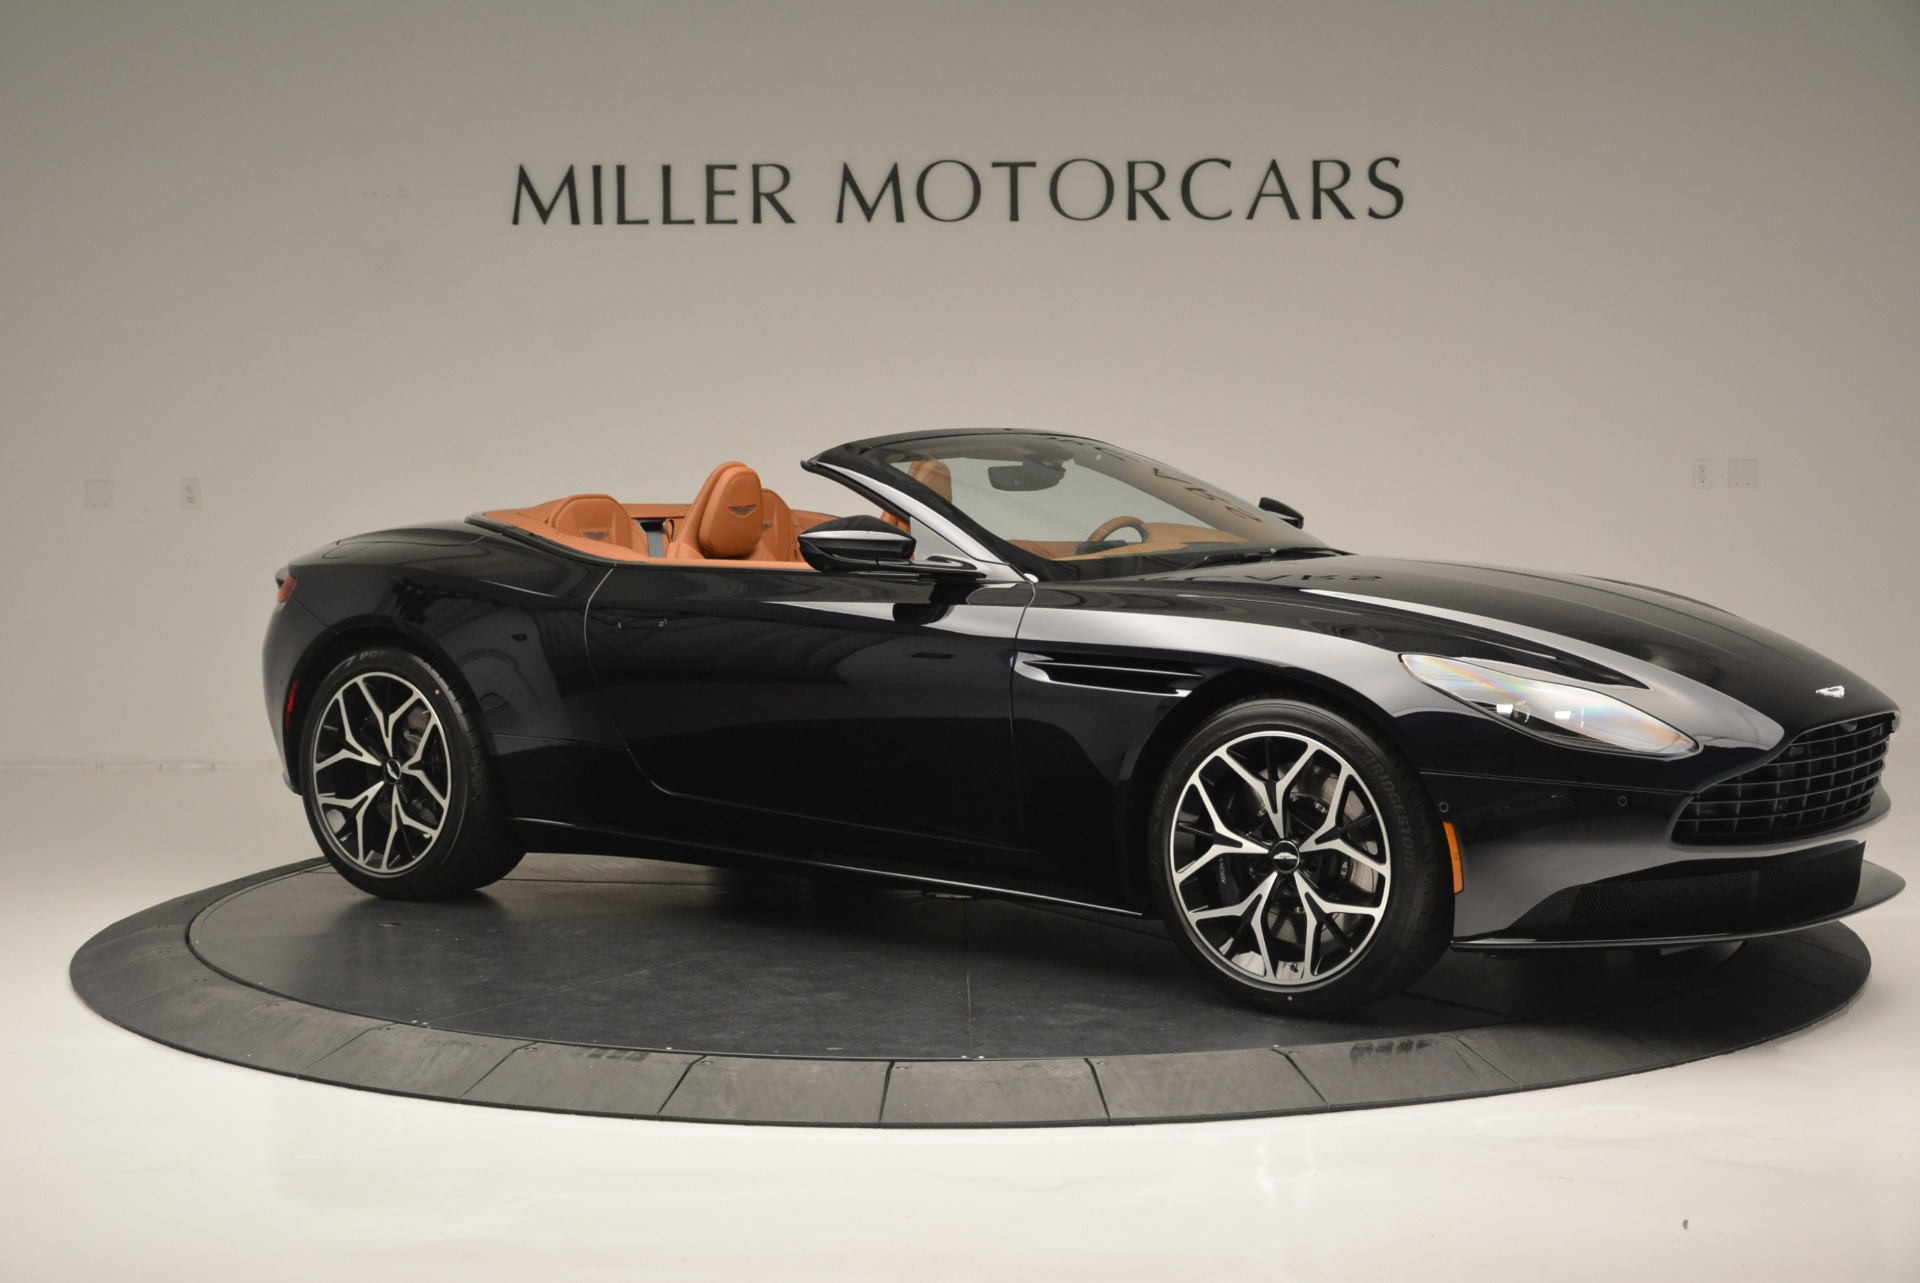 New 2019 Aston Martin DB11 Volante Volante For Sale In Greenwich, CT 2450_p10